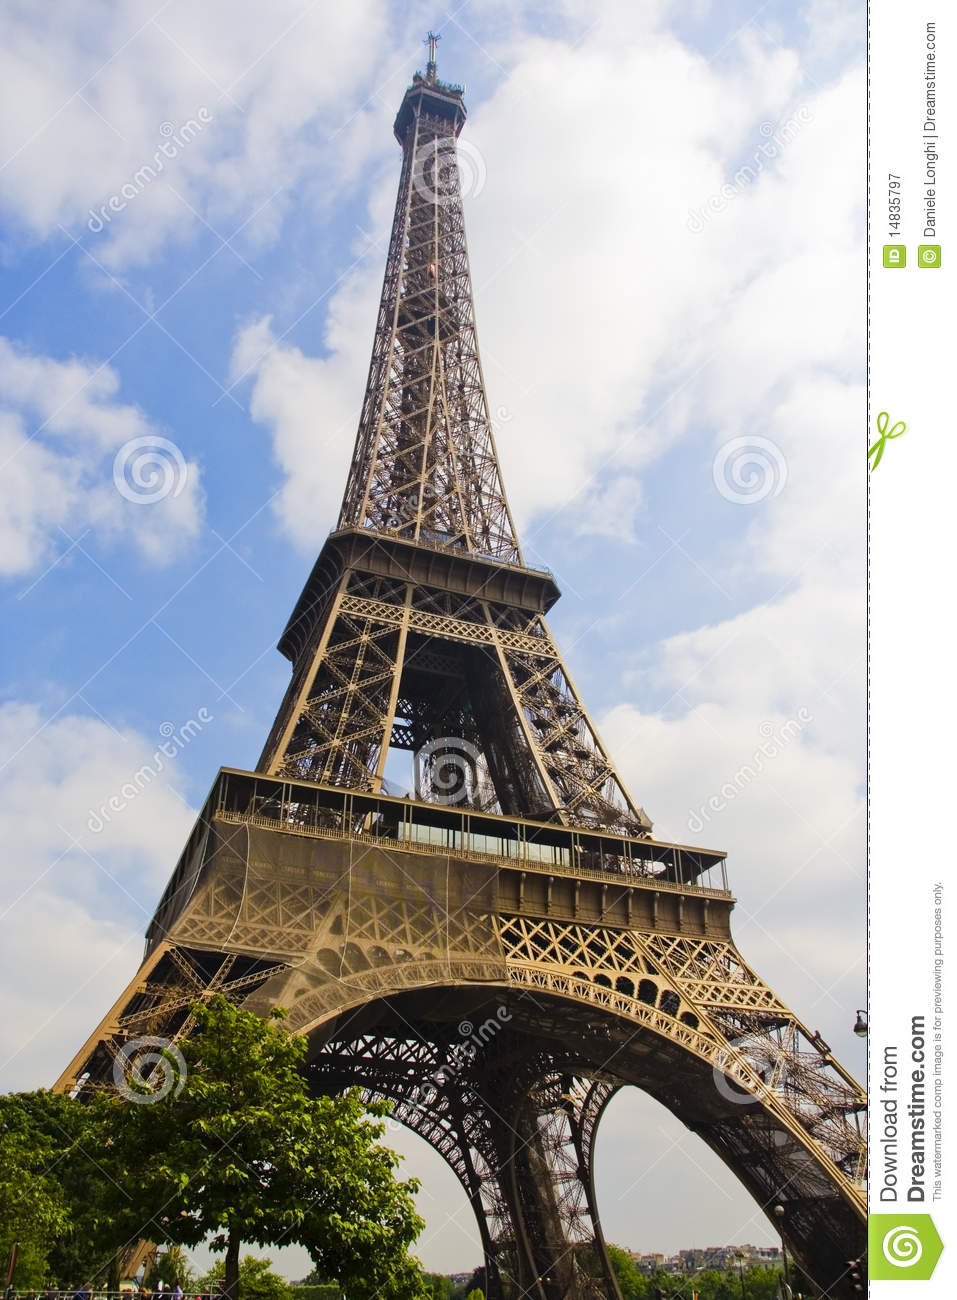 tour eiffel paris stock image image of icon famous 14835797. Black Bedroom Furniture Sets. Home Design Ideas